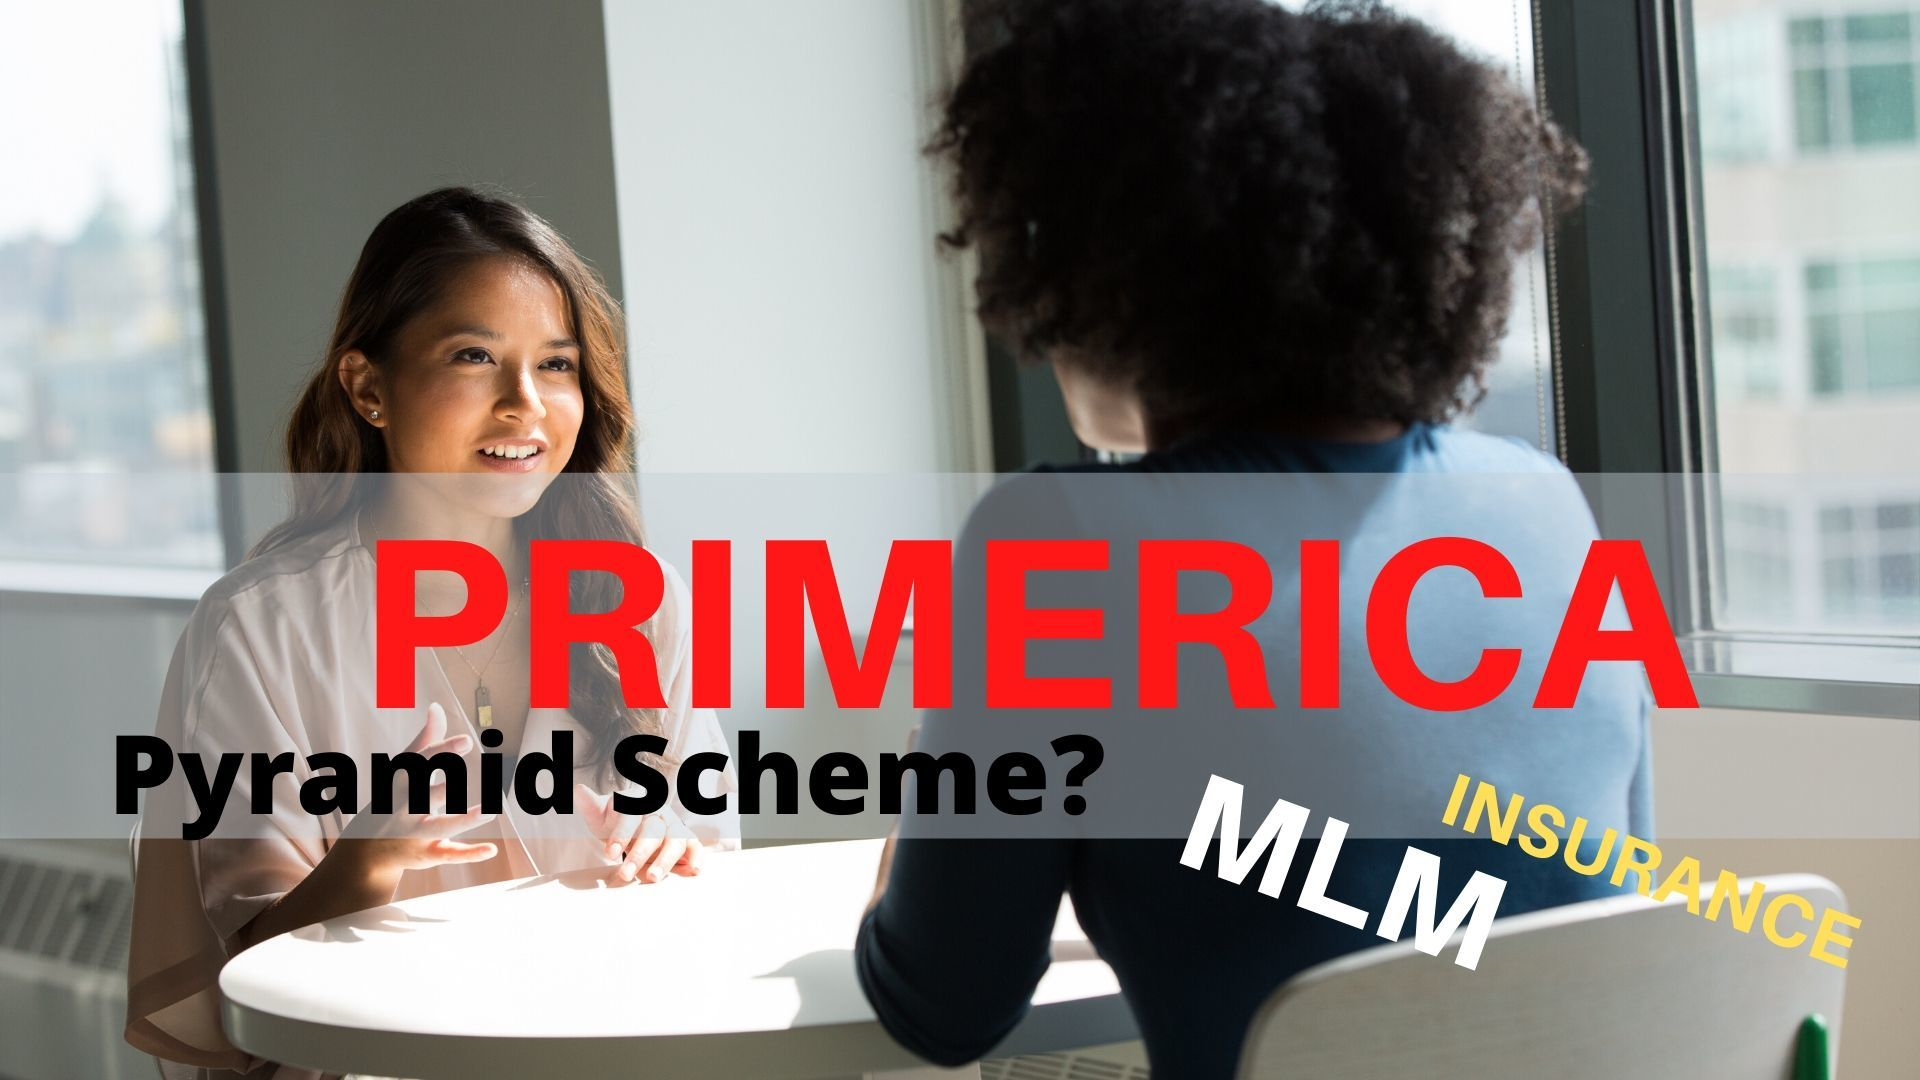 is primerica a pyramid scheme